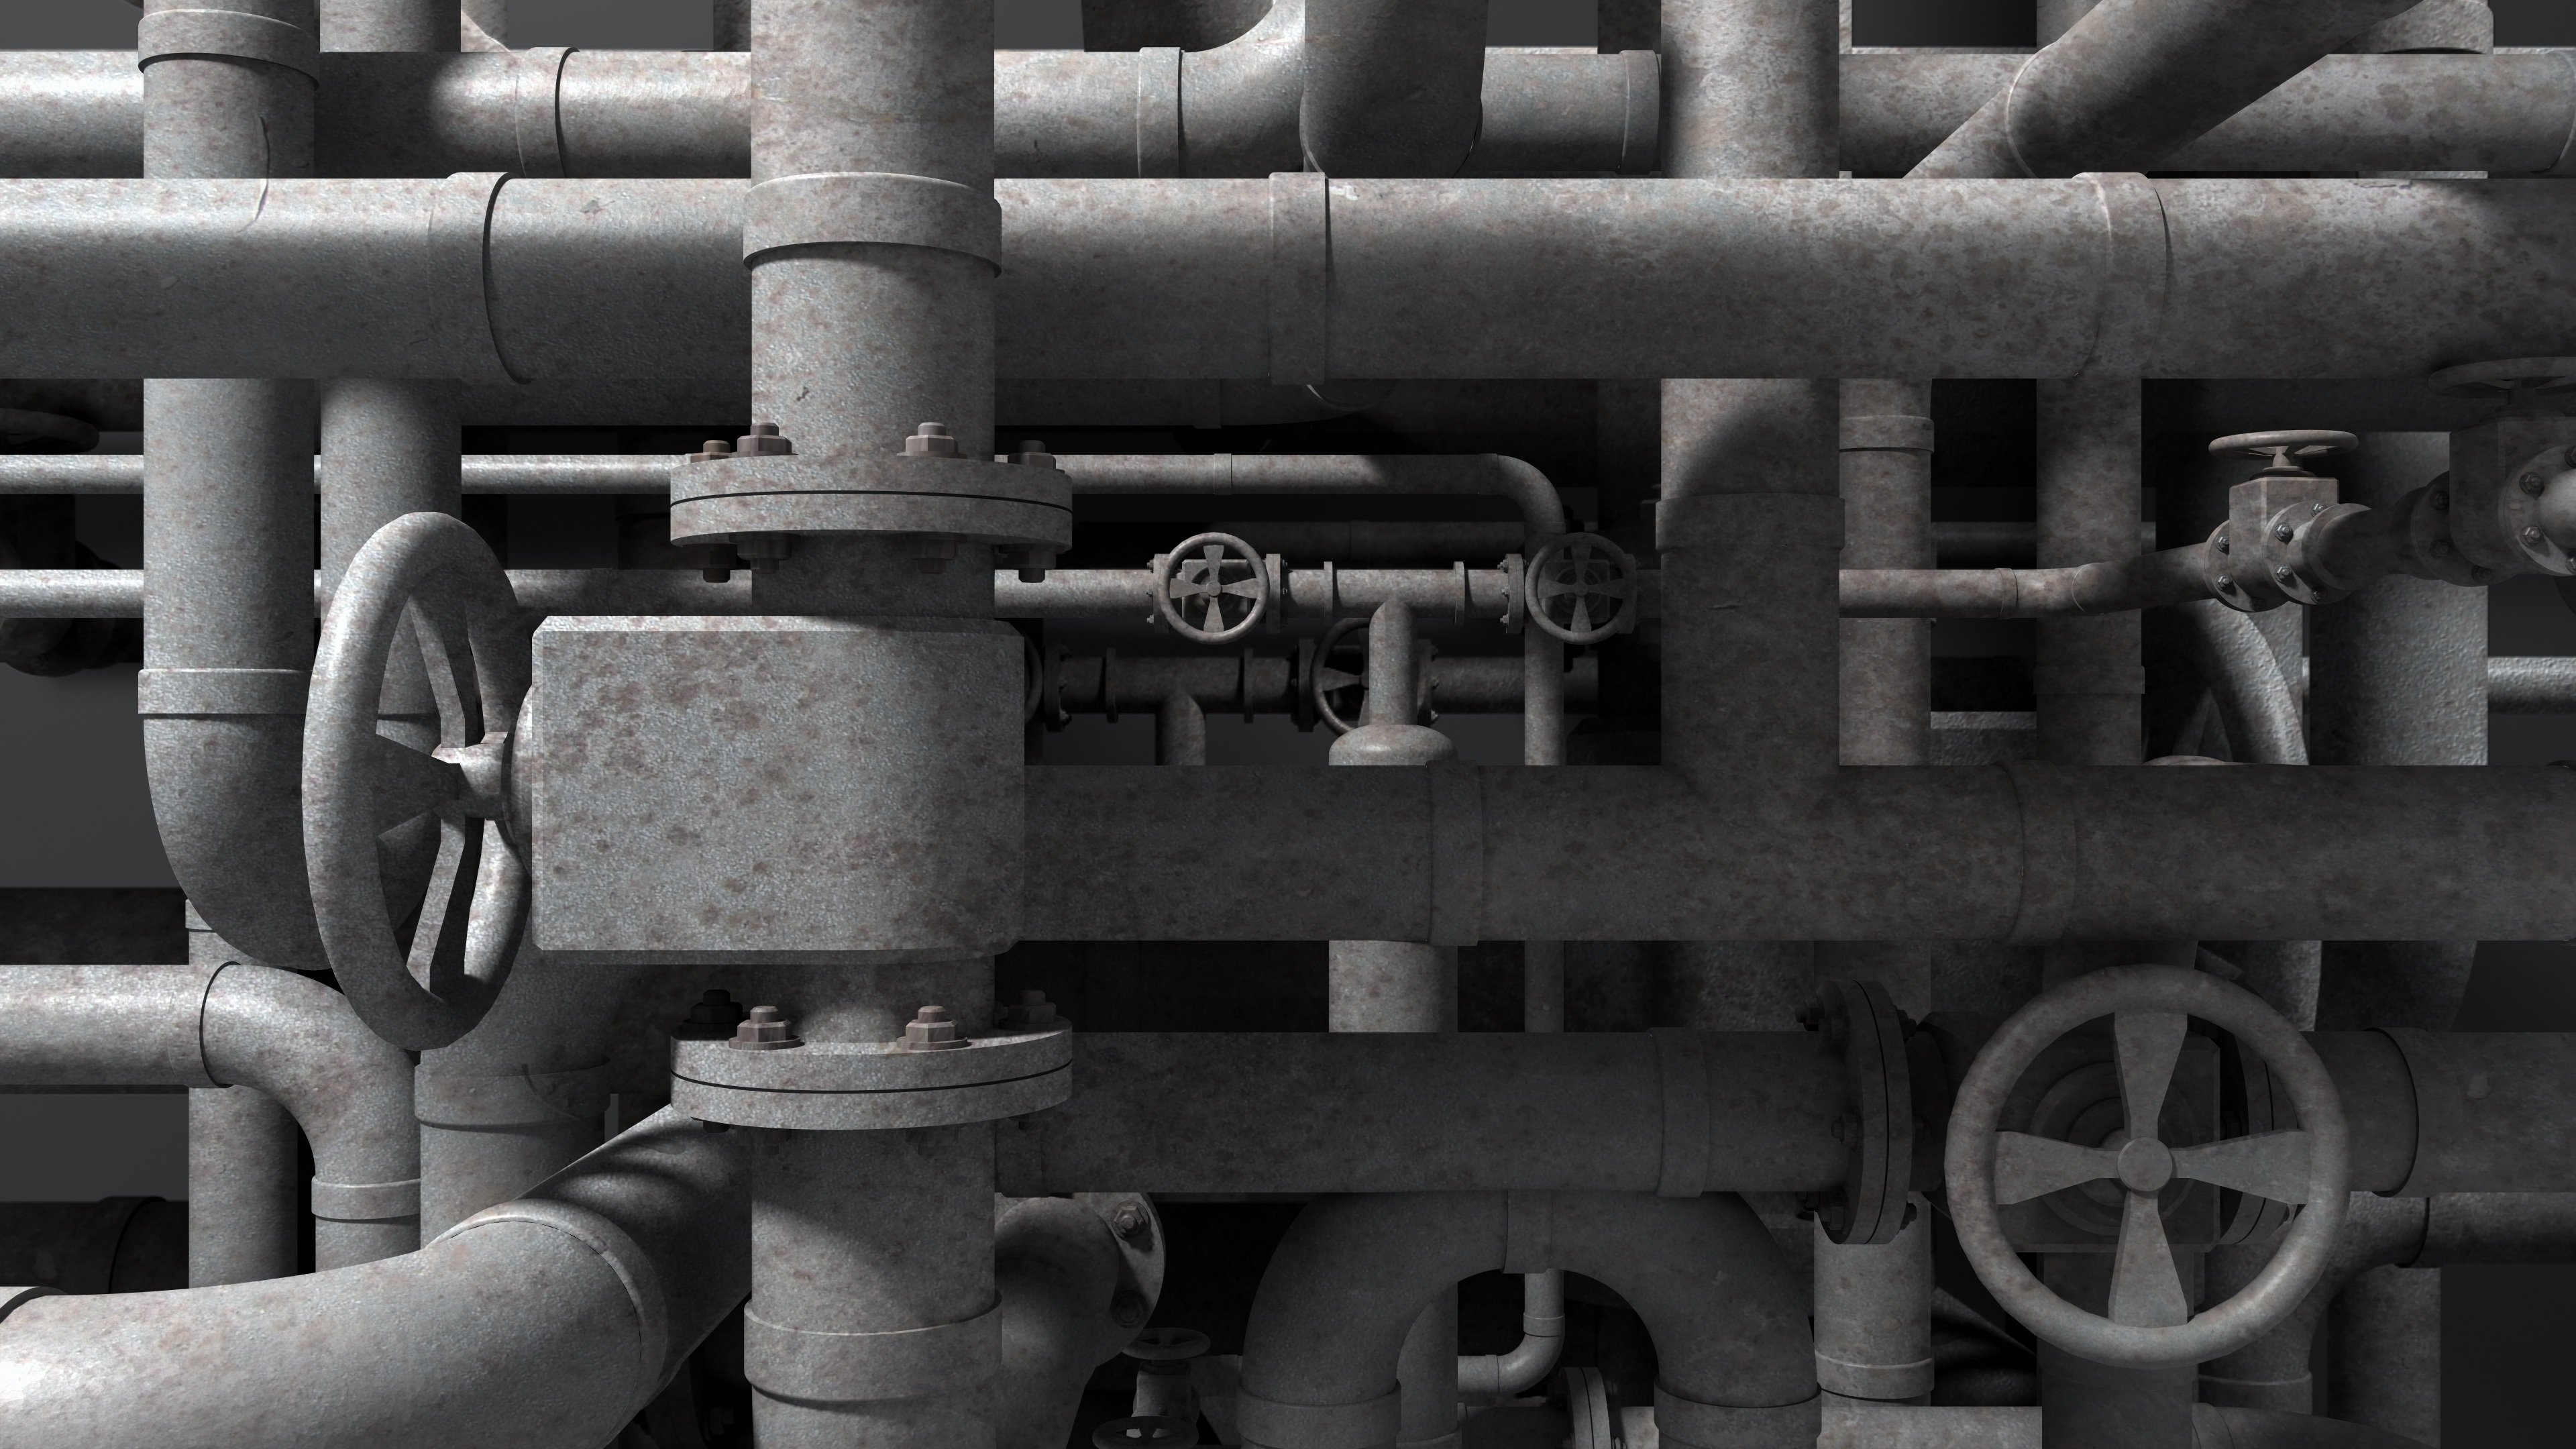 Commercial Repiping